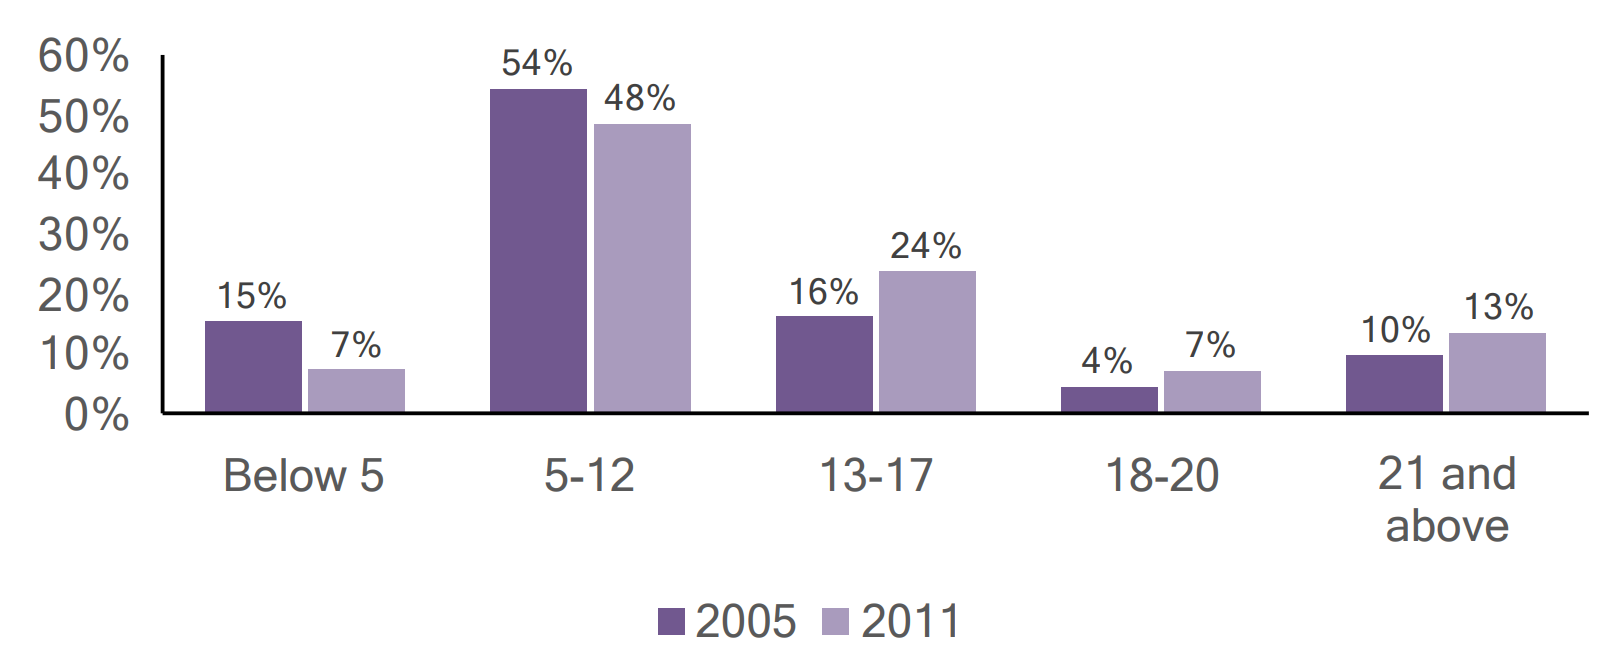 Bar graph of individuals with autism in Chester county by age, comparing 2005 and 2011 data.